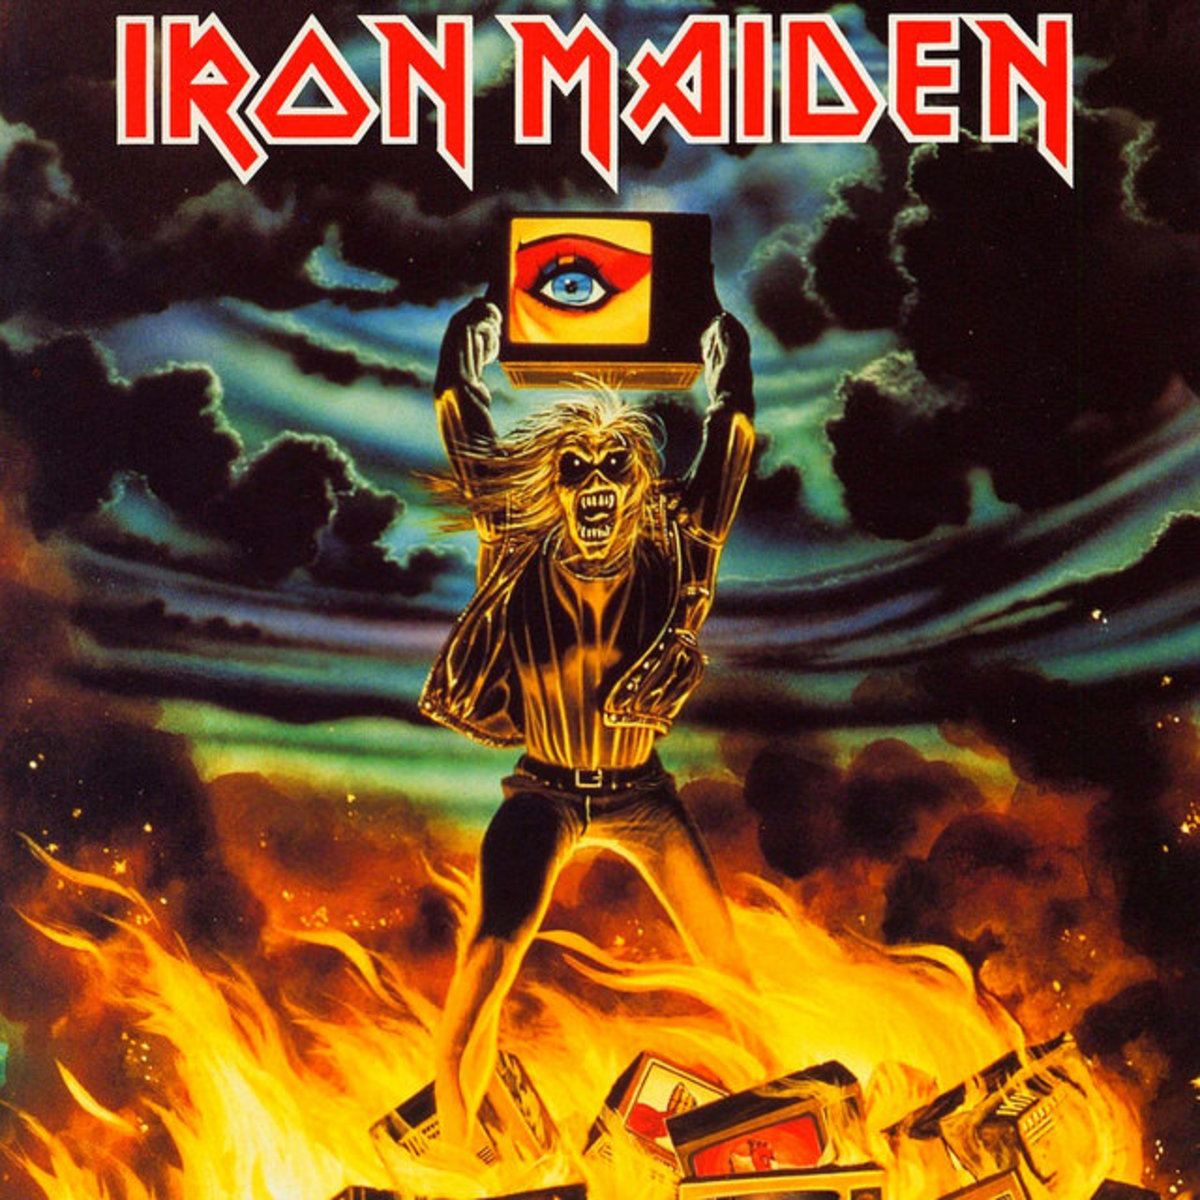 "Iron Maiden ""Holy Smoke"" EMI 12EMP 153 12"" Vinyl Single UK Pressing (1990) Cover Art by Derek Riggs"